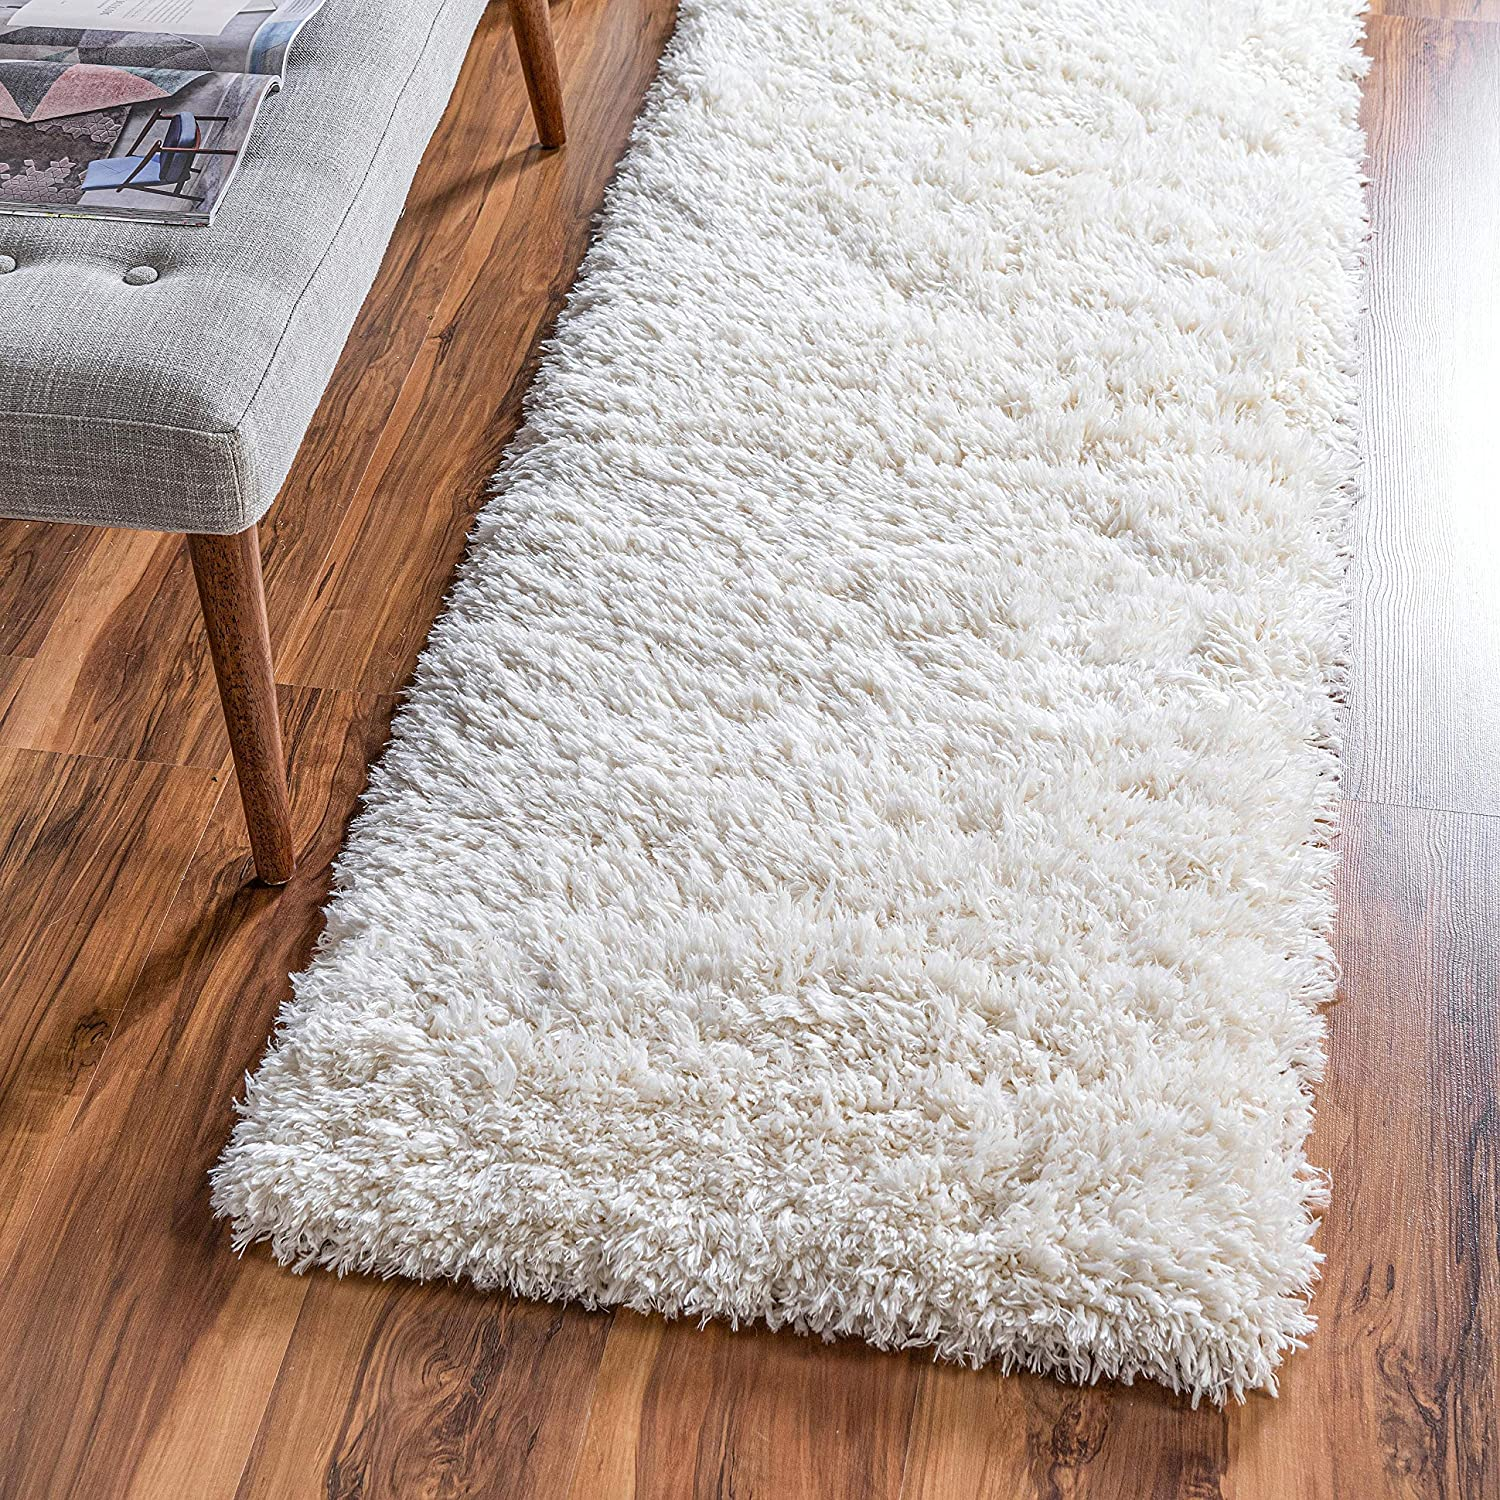 Rugs.com Infinity Collection Solid Shag Runner Rug - Pearl 3' x 13' Plush Shag Rug Perfect for Hallways, Living Rooms, Bedrooms and More